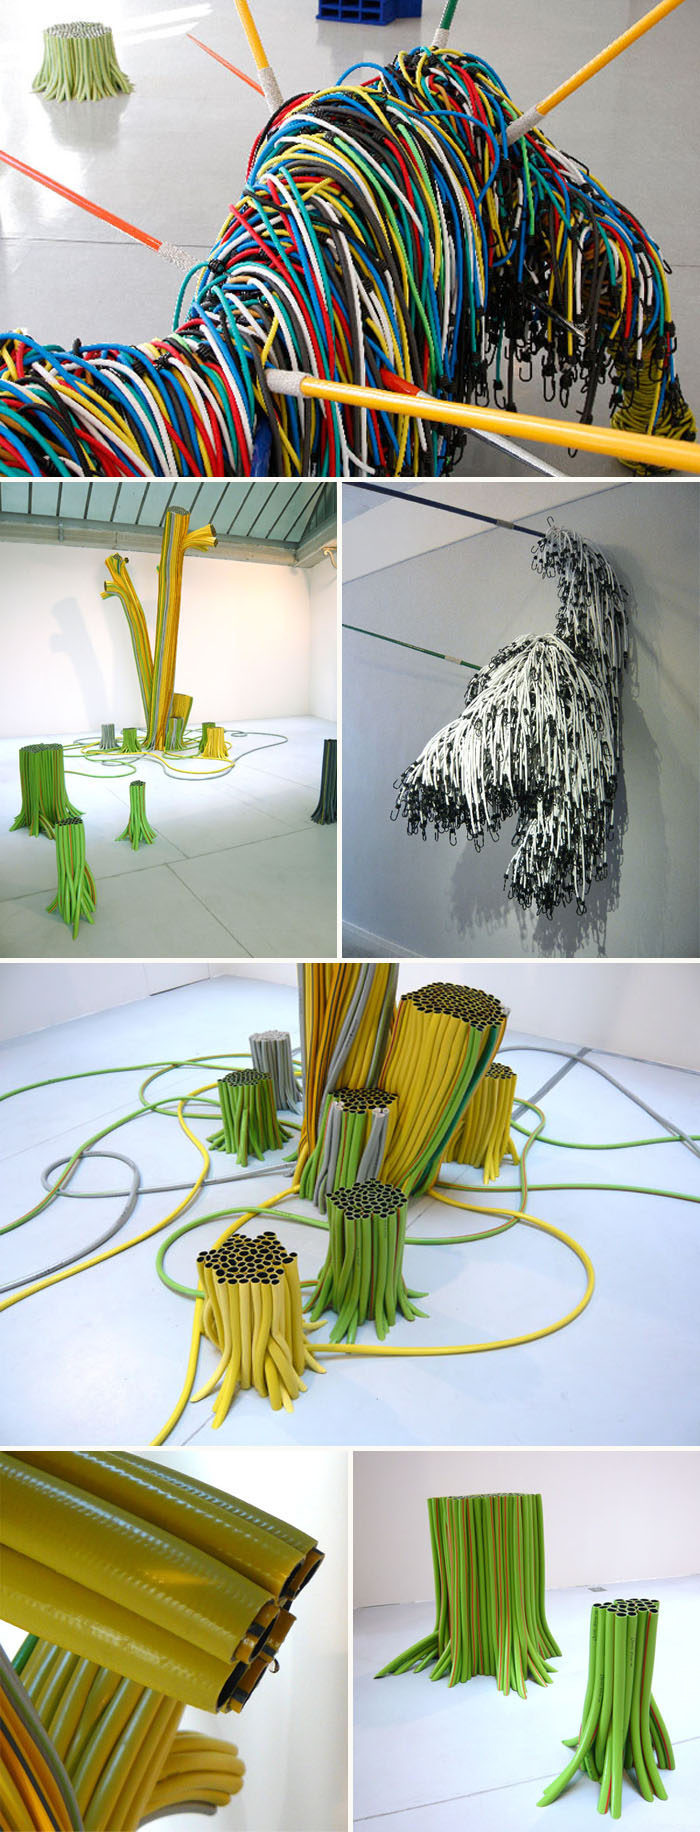 French contemporary sculpture using bungee cords and pvc piping, Laurent Perbos